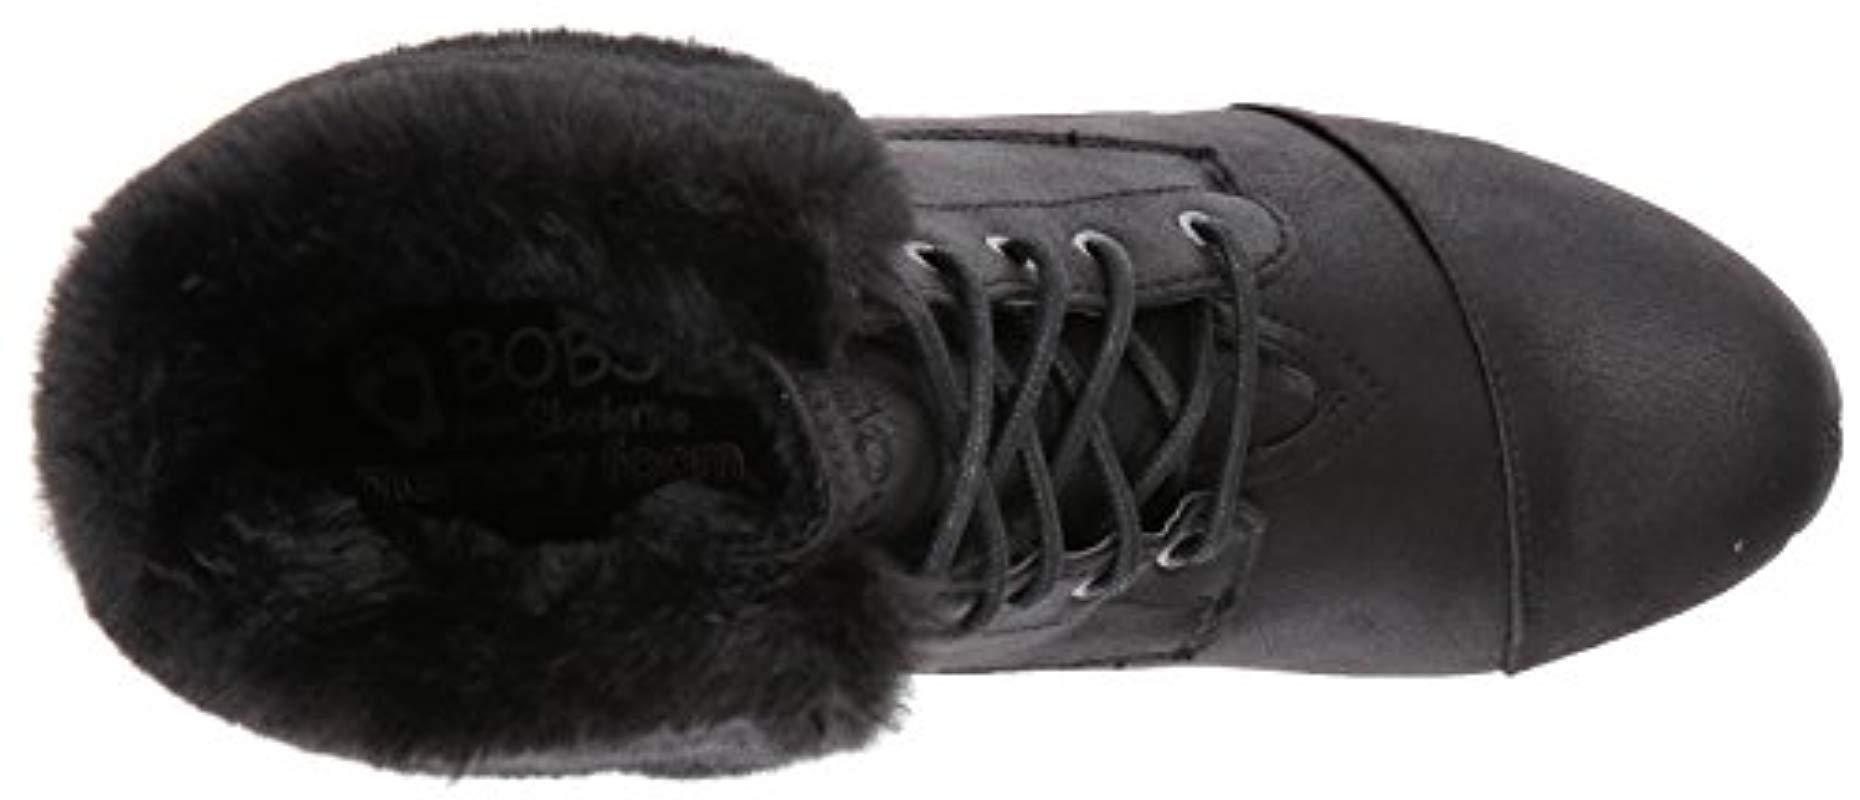 57fb465941ec Skechers - Black Bobs High Peaks-flurry Dust Ankle Boot - Lyst. View  fullscreen